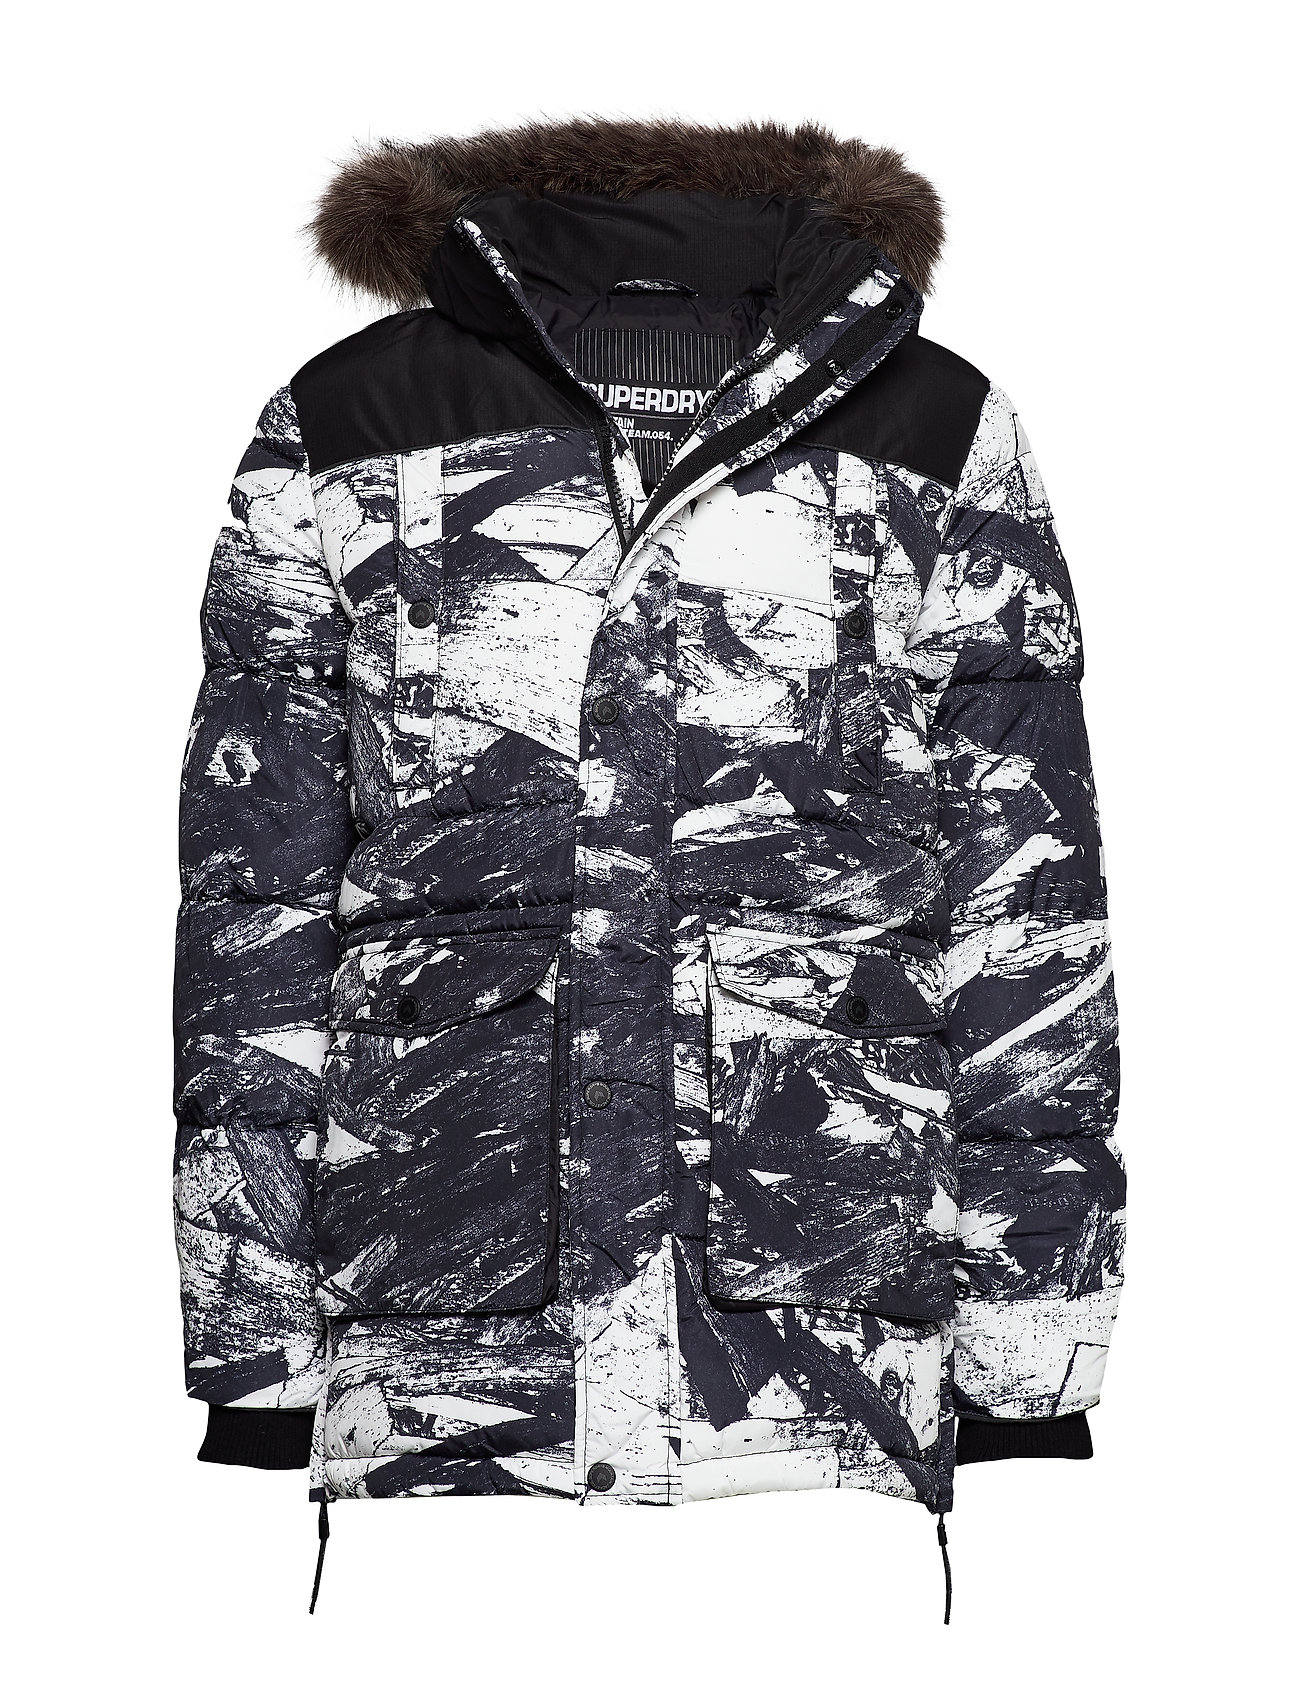 Superdry SD EXPLORER PARKA - TEXTRED WOOD